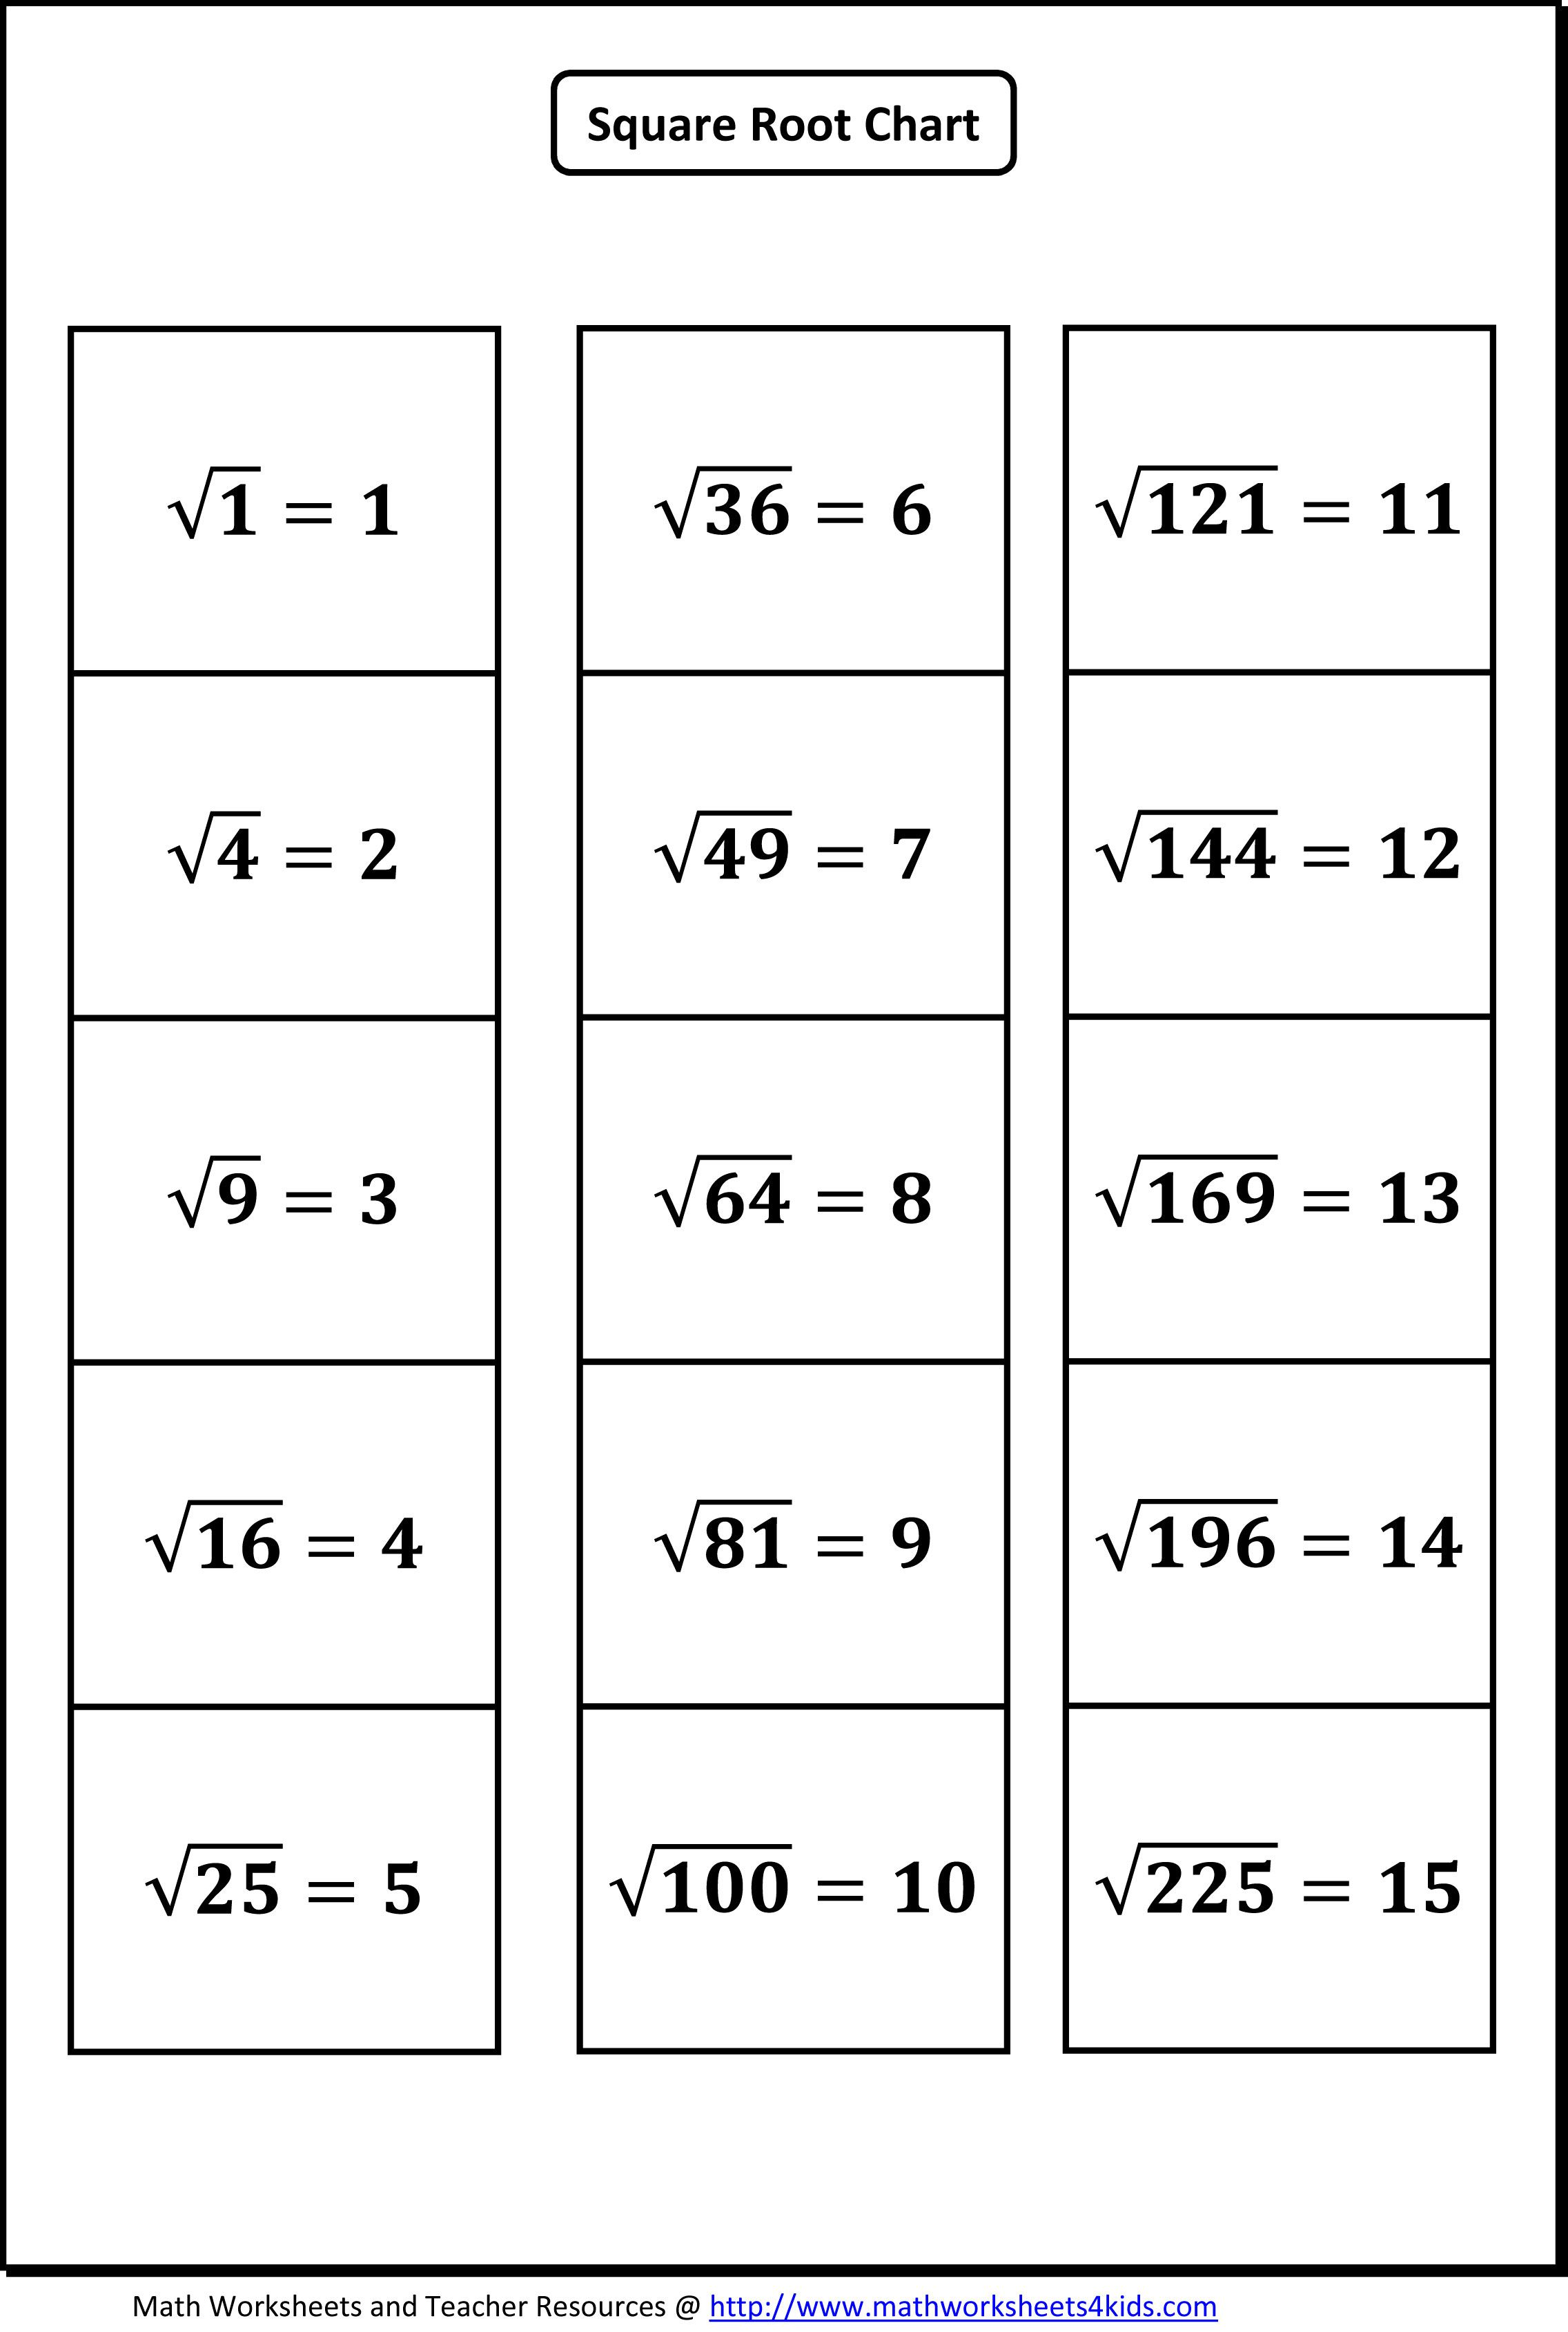 Books Never Written Math Worksheet Answers Page 127